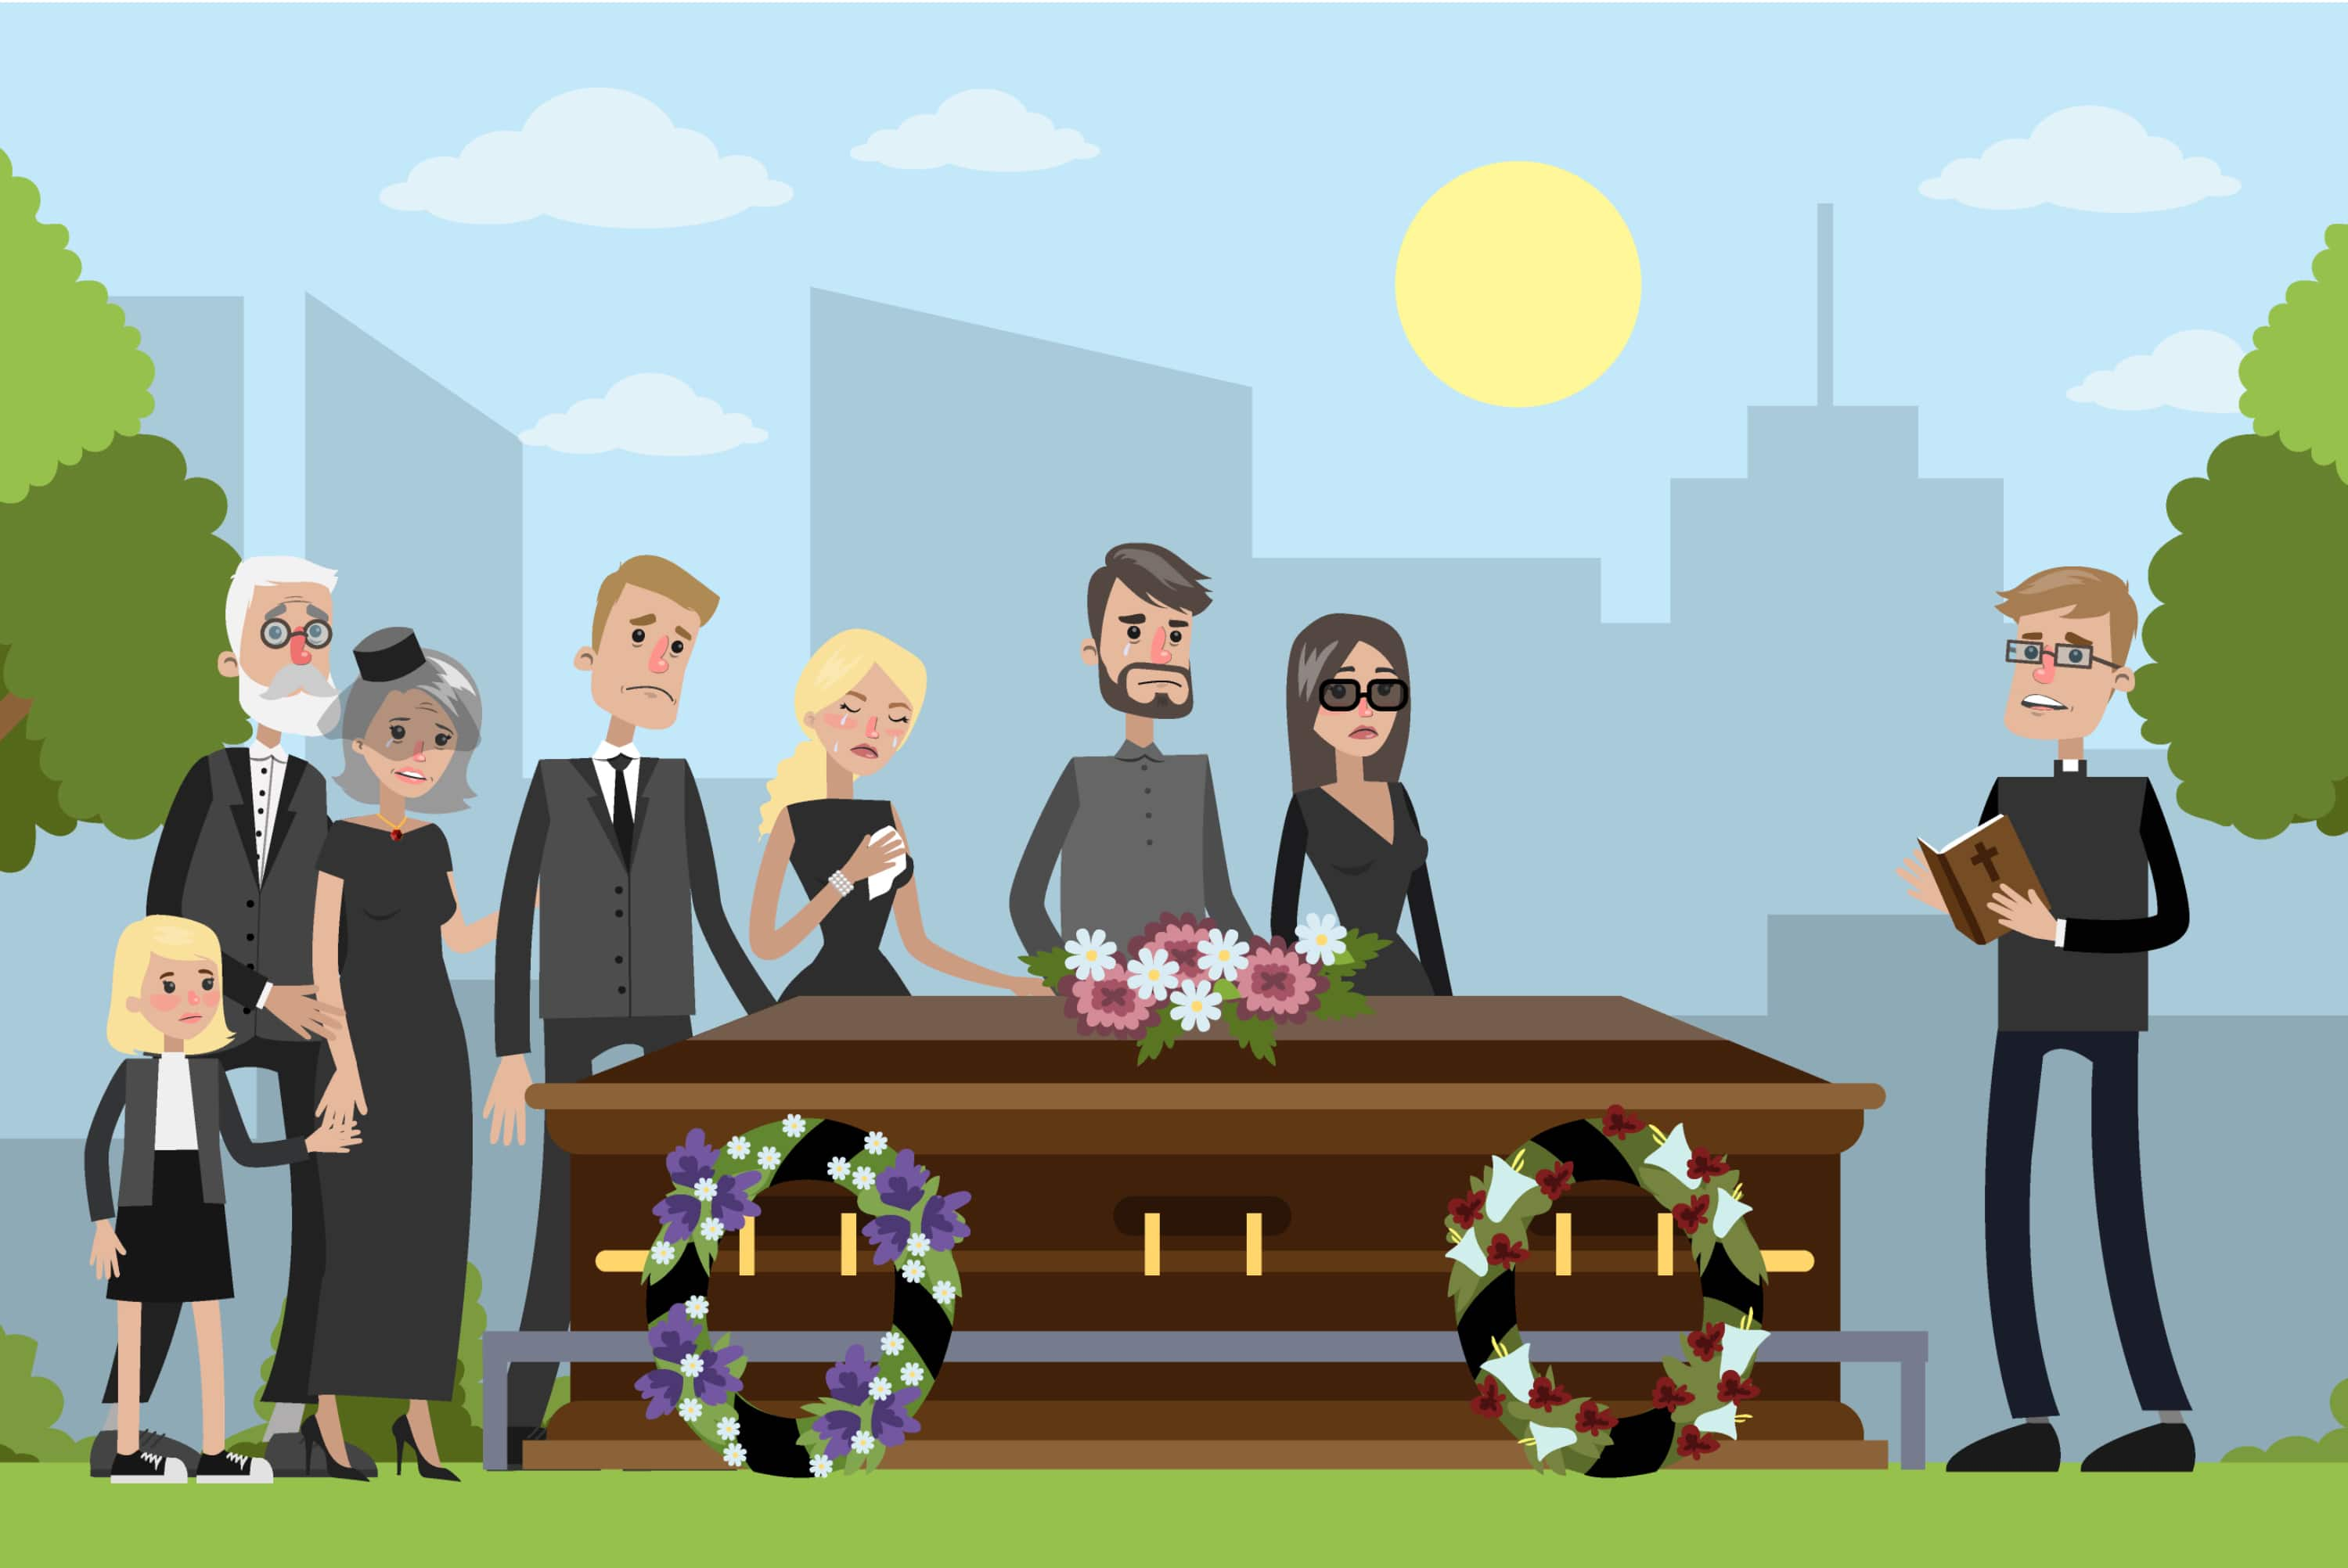 Funeral costs are becoming higher